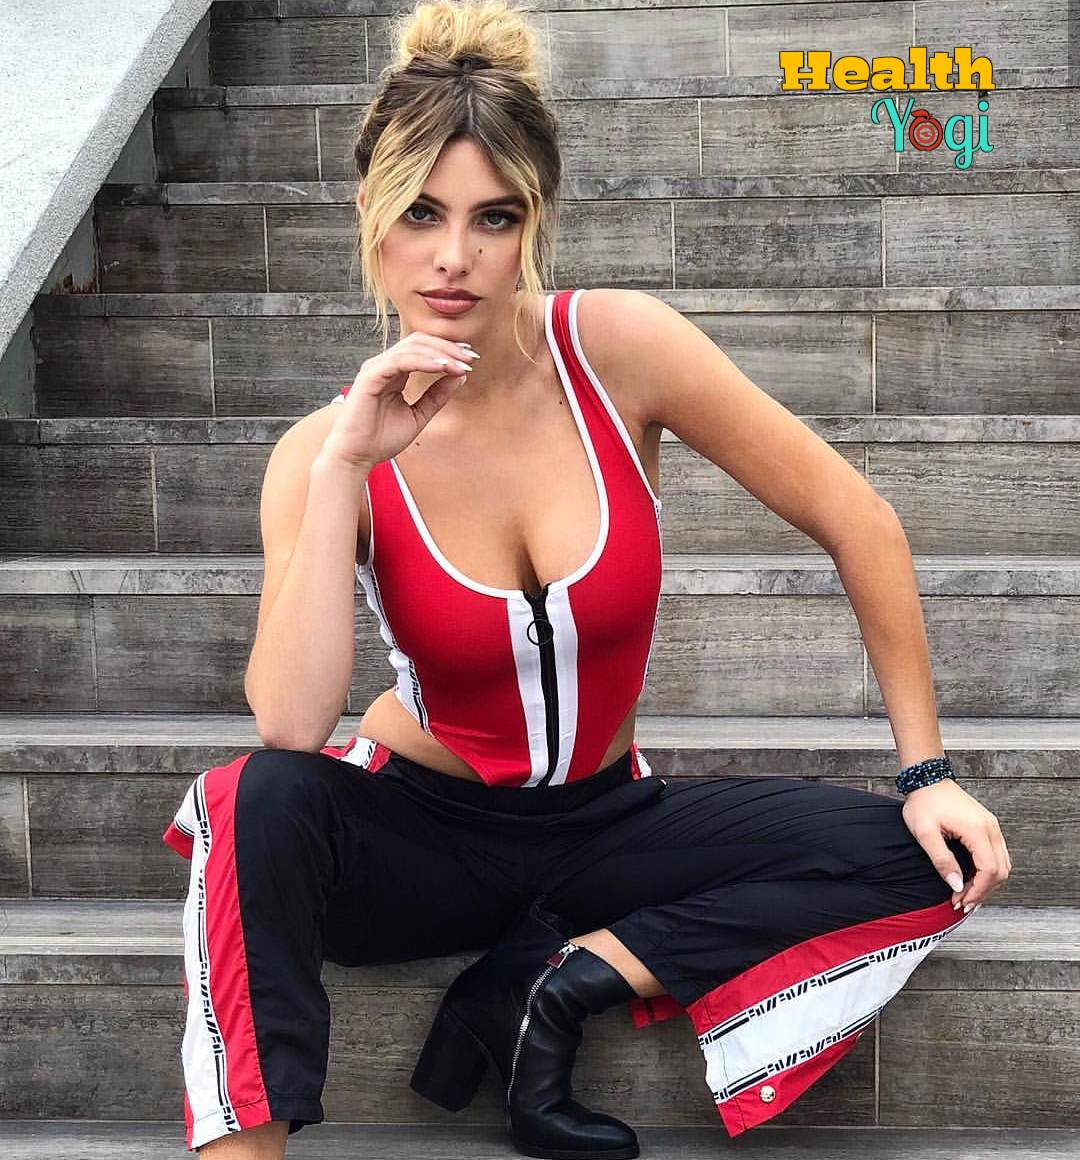 Lele Pons Workout Routine and Diet Plan